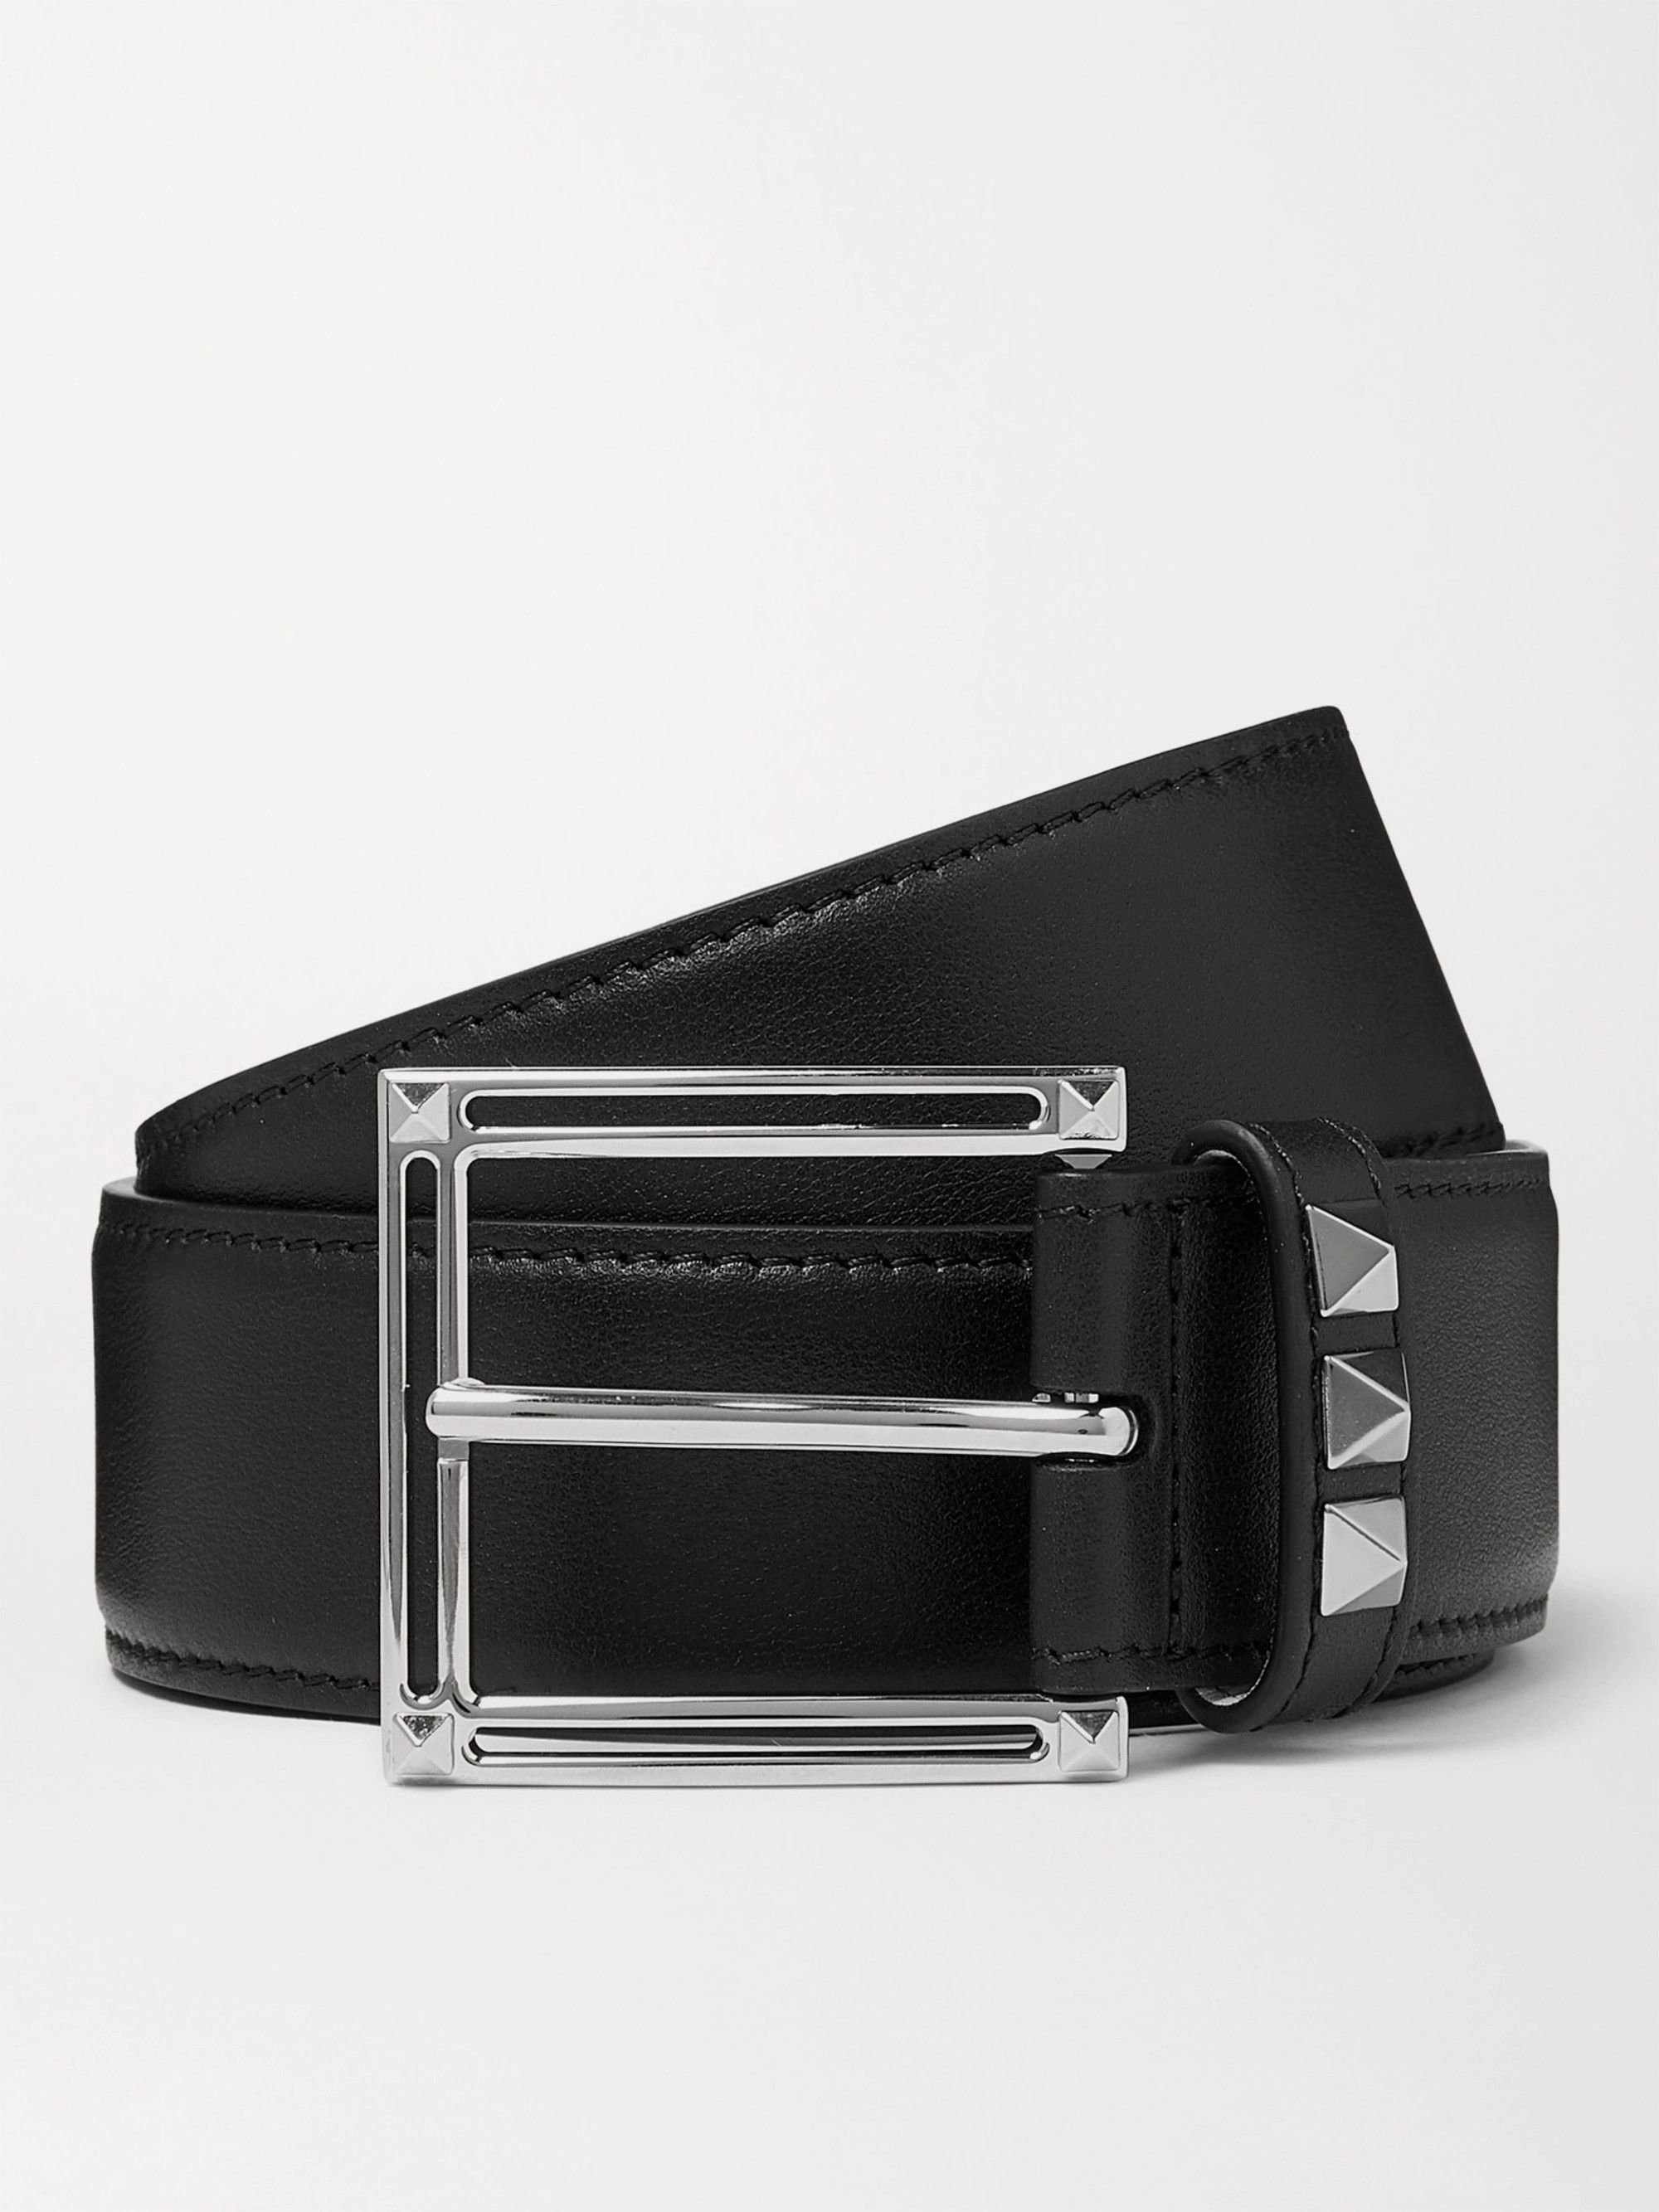 Valentino Valentino Garavani 3.5cm Black Rockstud Leather Belt